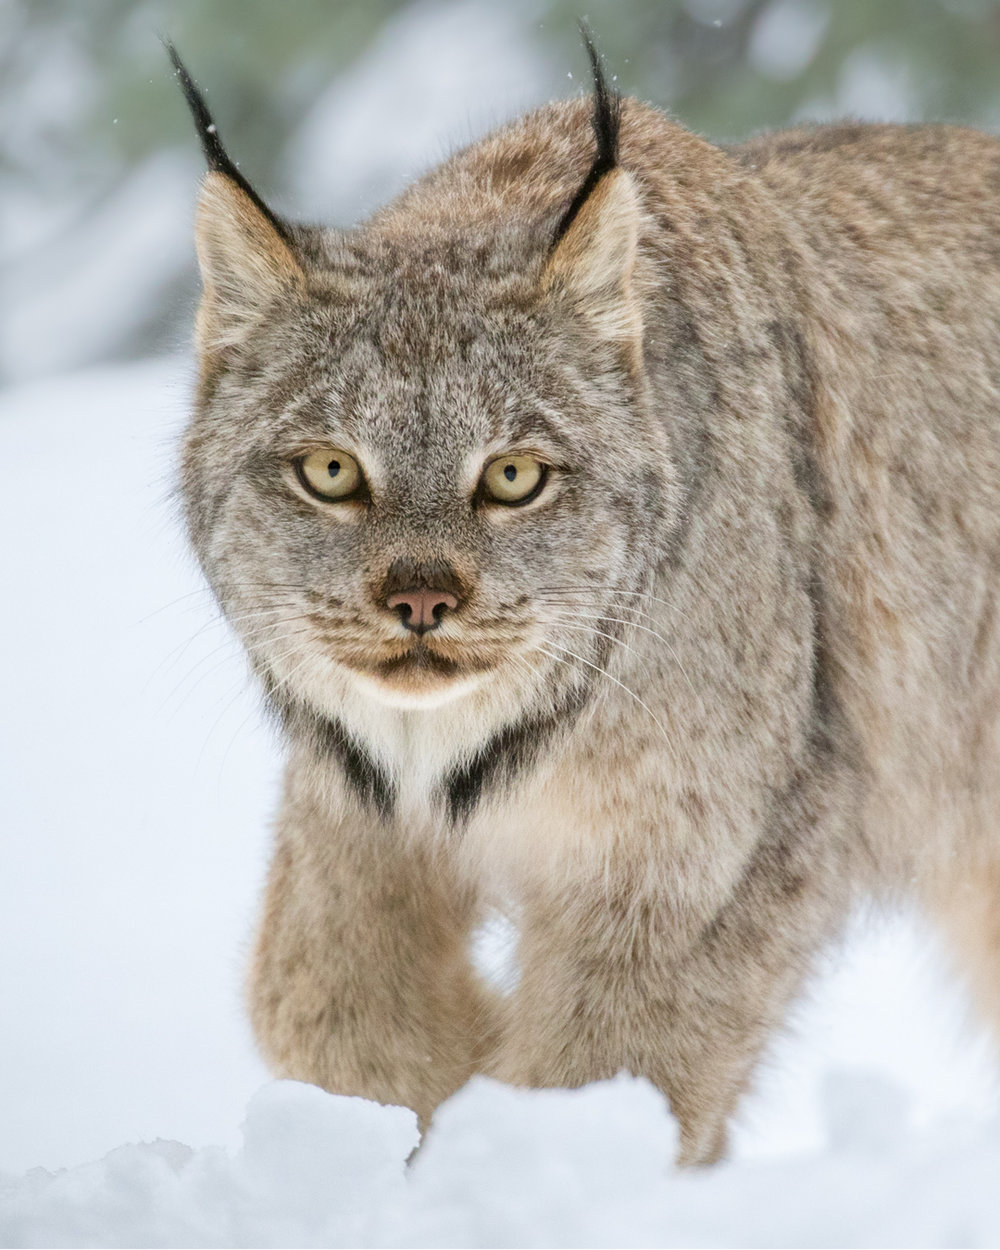 Finding the specific forest composition preferred by Snowshoe Hare (the winter diet staple of the Canada Lynx) was an essential step in experiencing this close encounter.